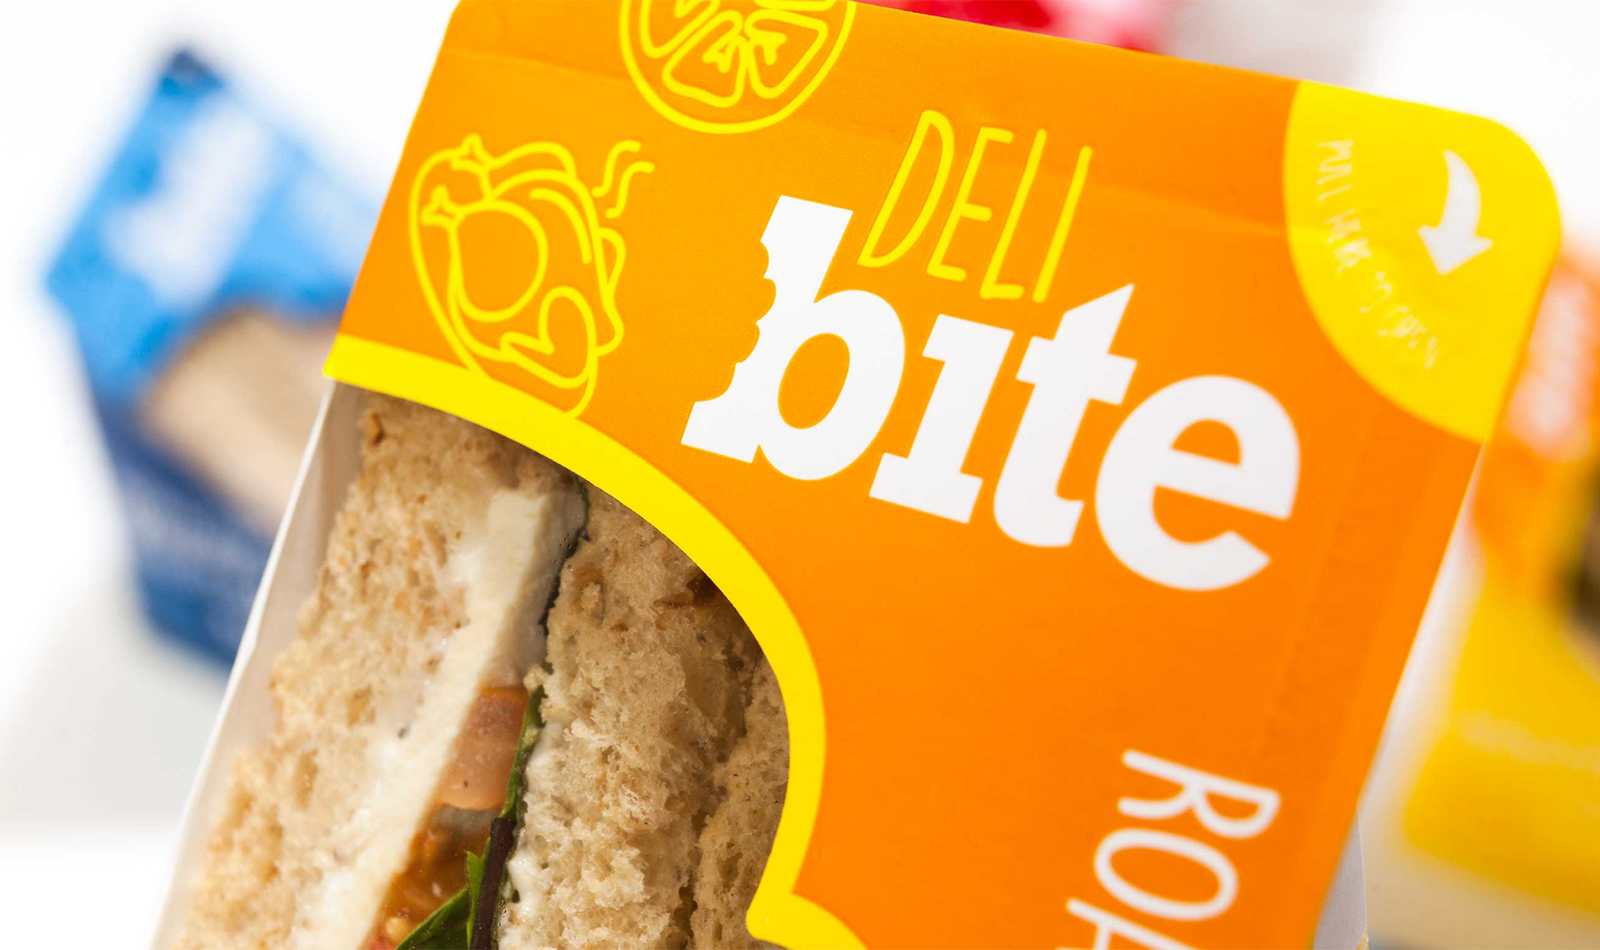 Deli Bite Sandwich Branding and design